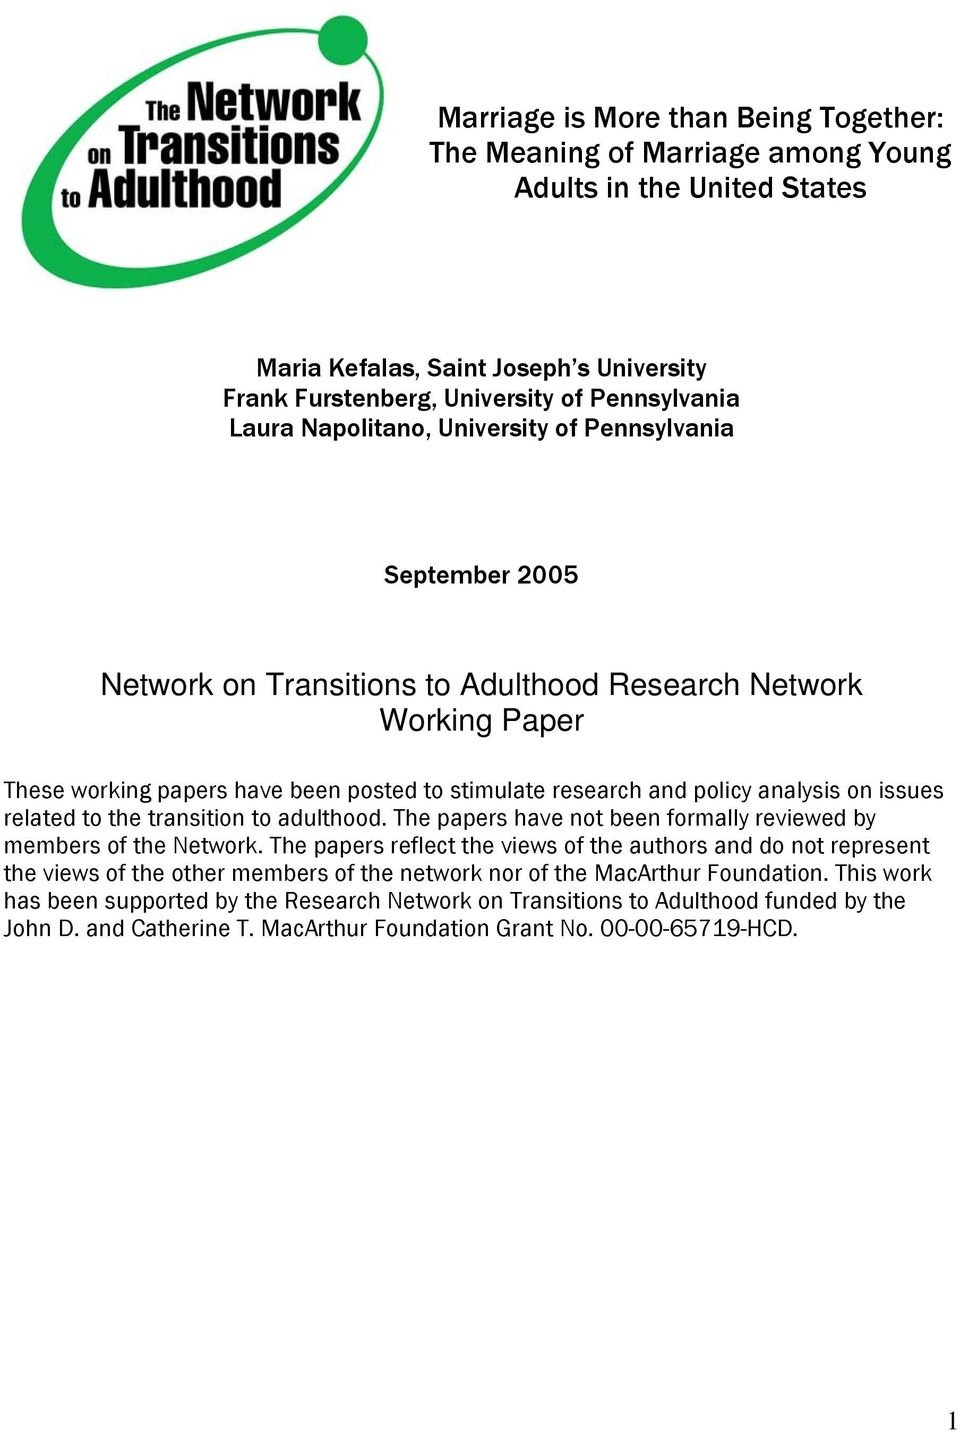 analysis on issues related to the transition to adulthood. The papers have not been formally reviewed by members of the Network.